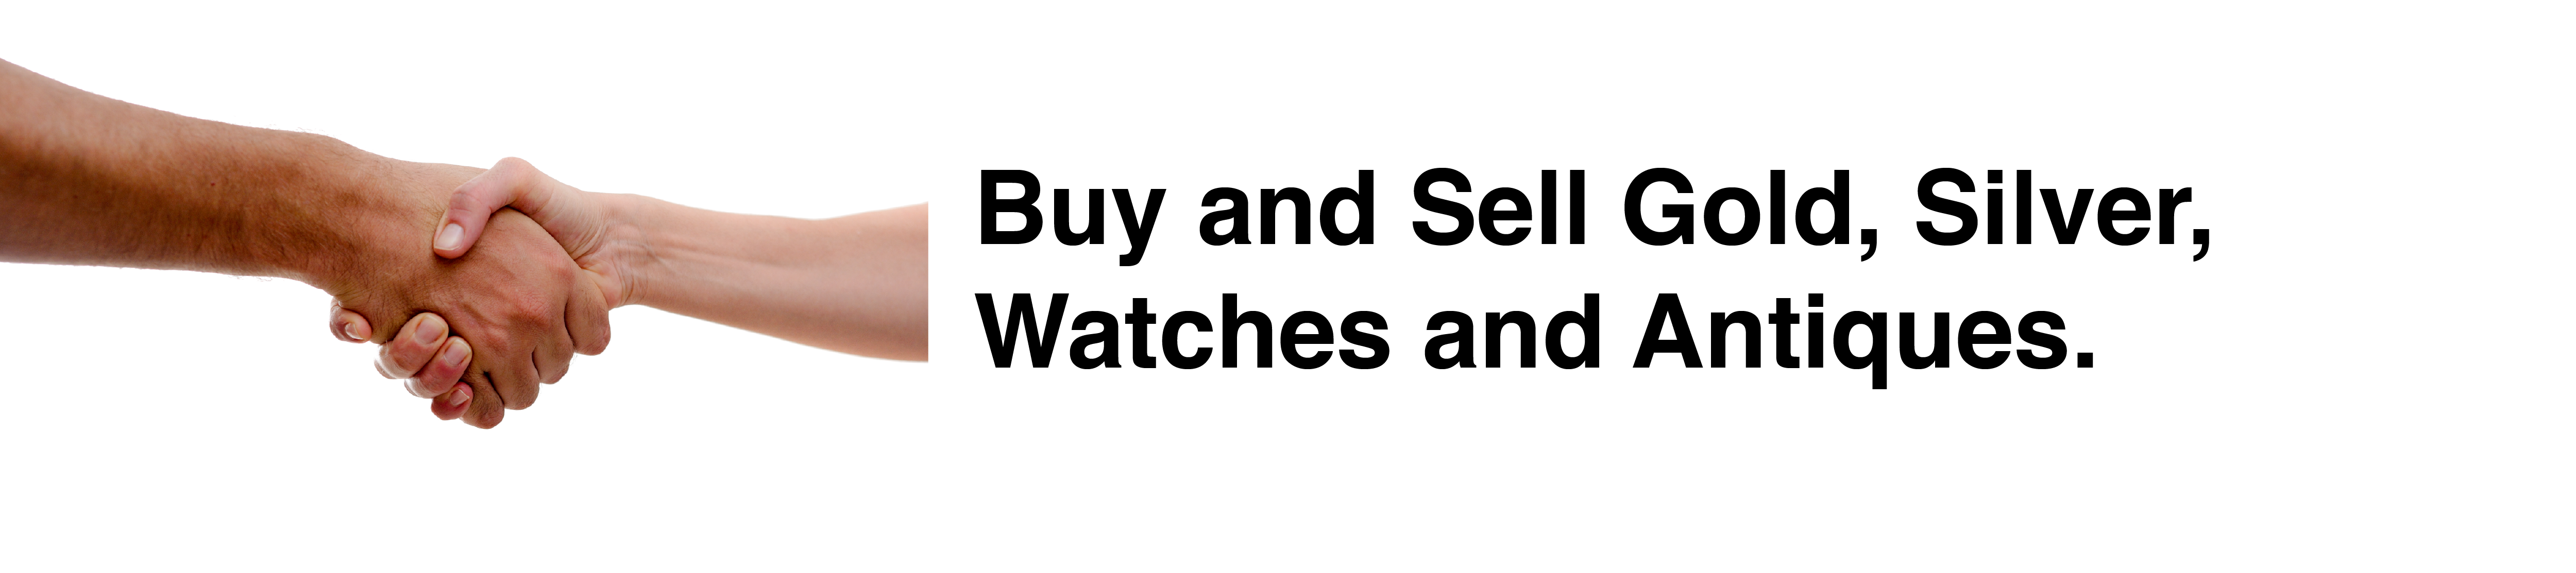 Buy and Sell Gold, Silver, Watches and Antiques